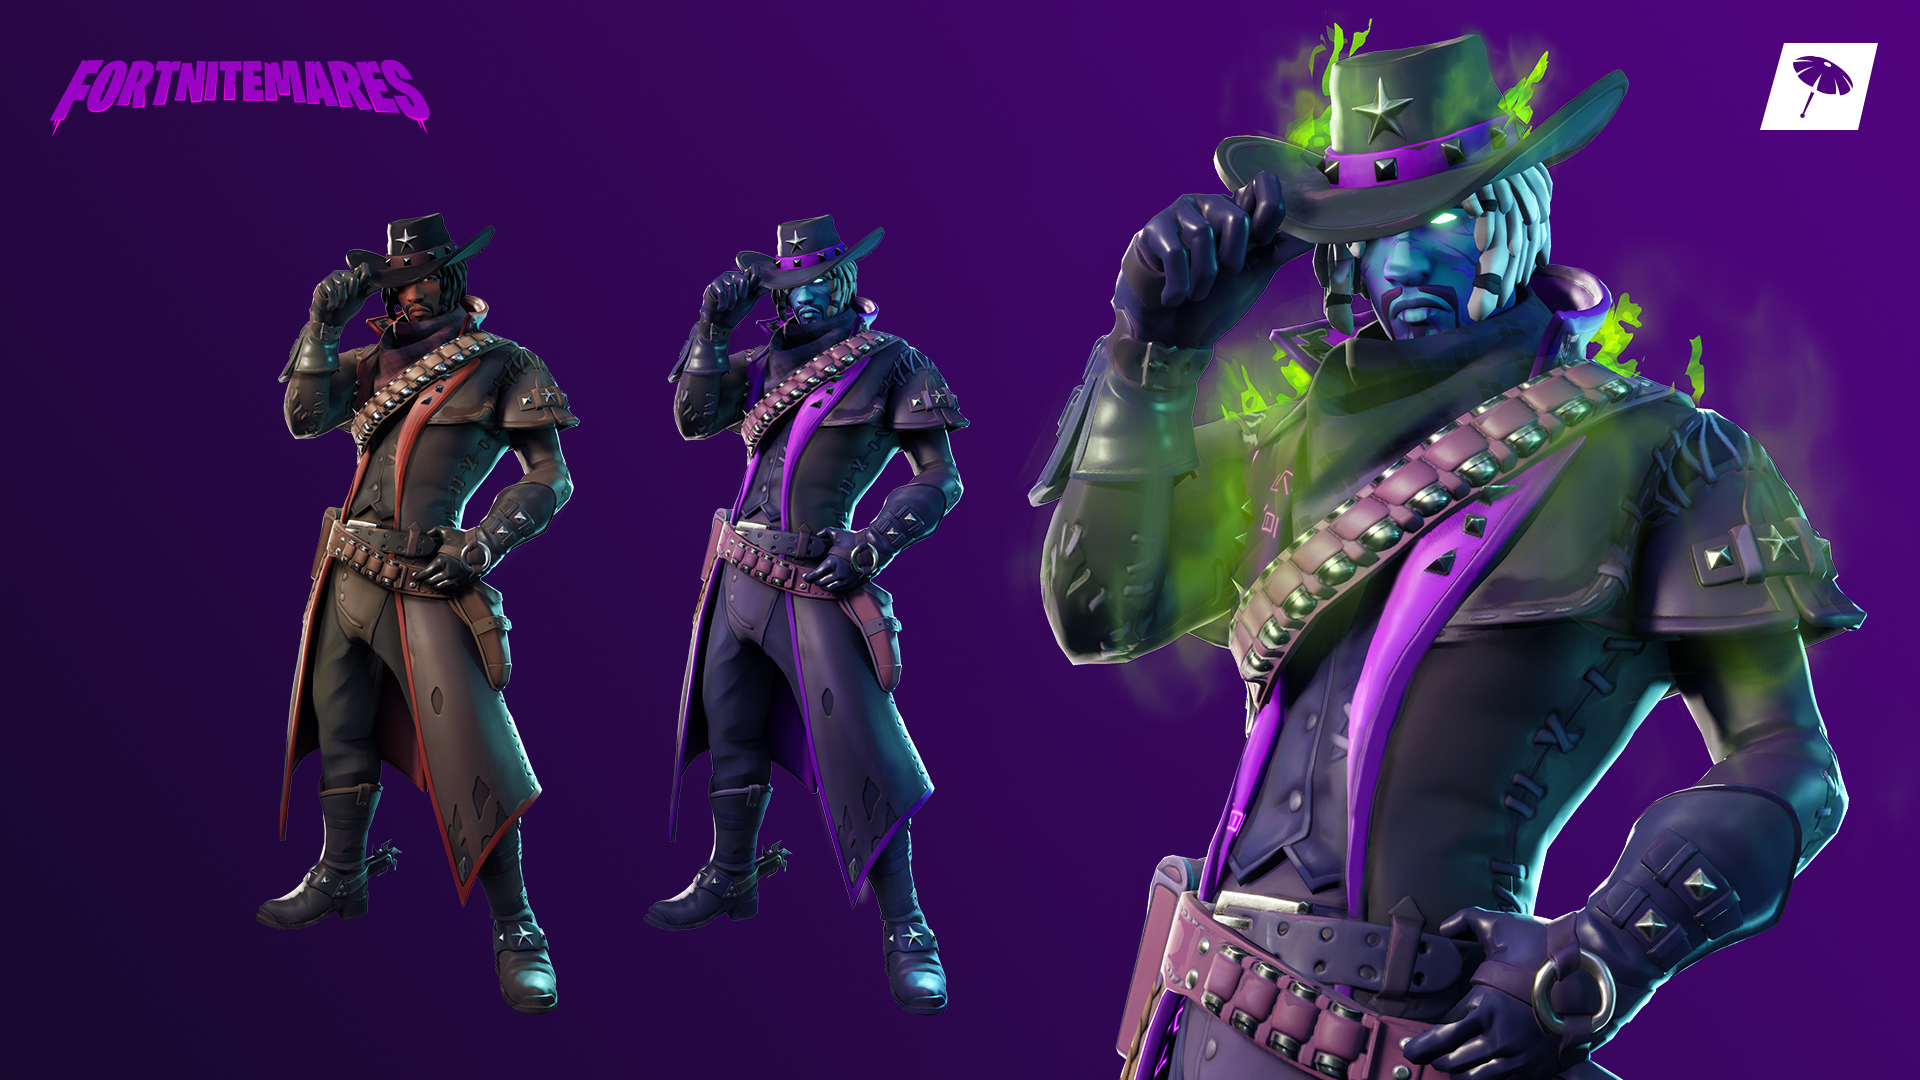 Halloween Skins Fortnite 2018.Here S Everything We Know About Fortnitemares The 2018